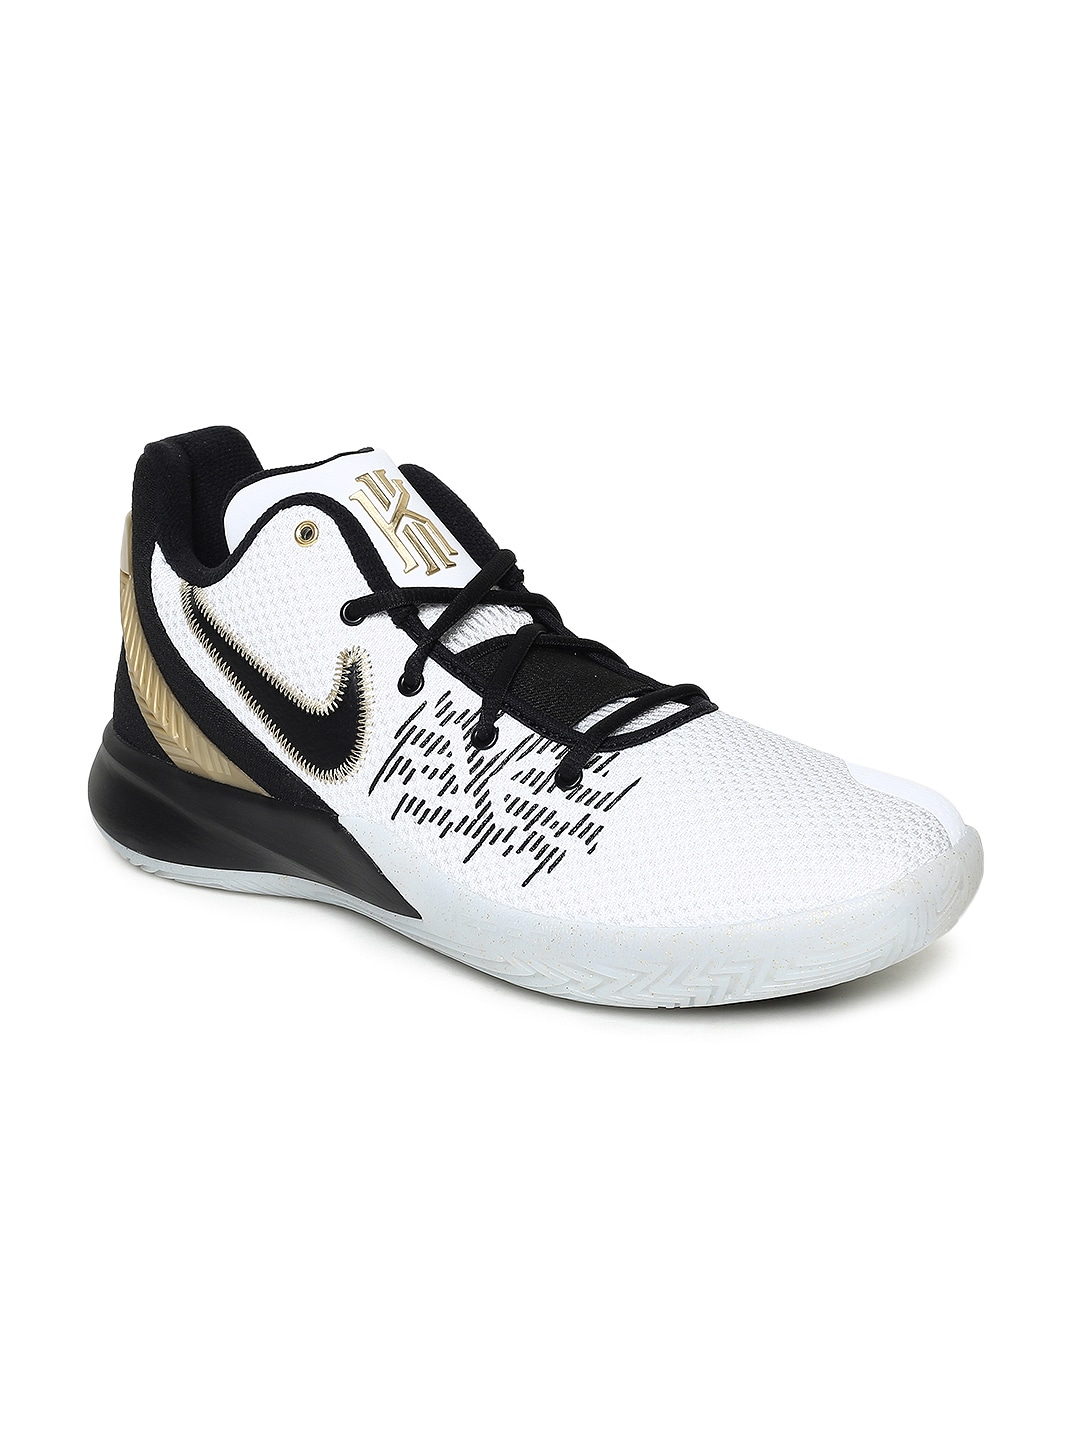 san francisco e4e5c 2936d Nike Basketball Shoes   Buy Nike Basketball Shoes Online in India at Best  Price